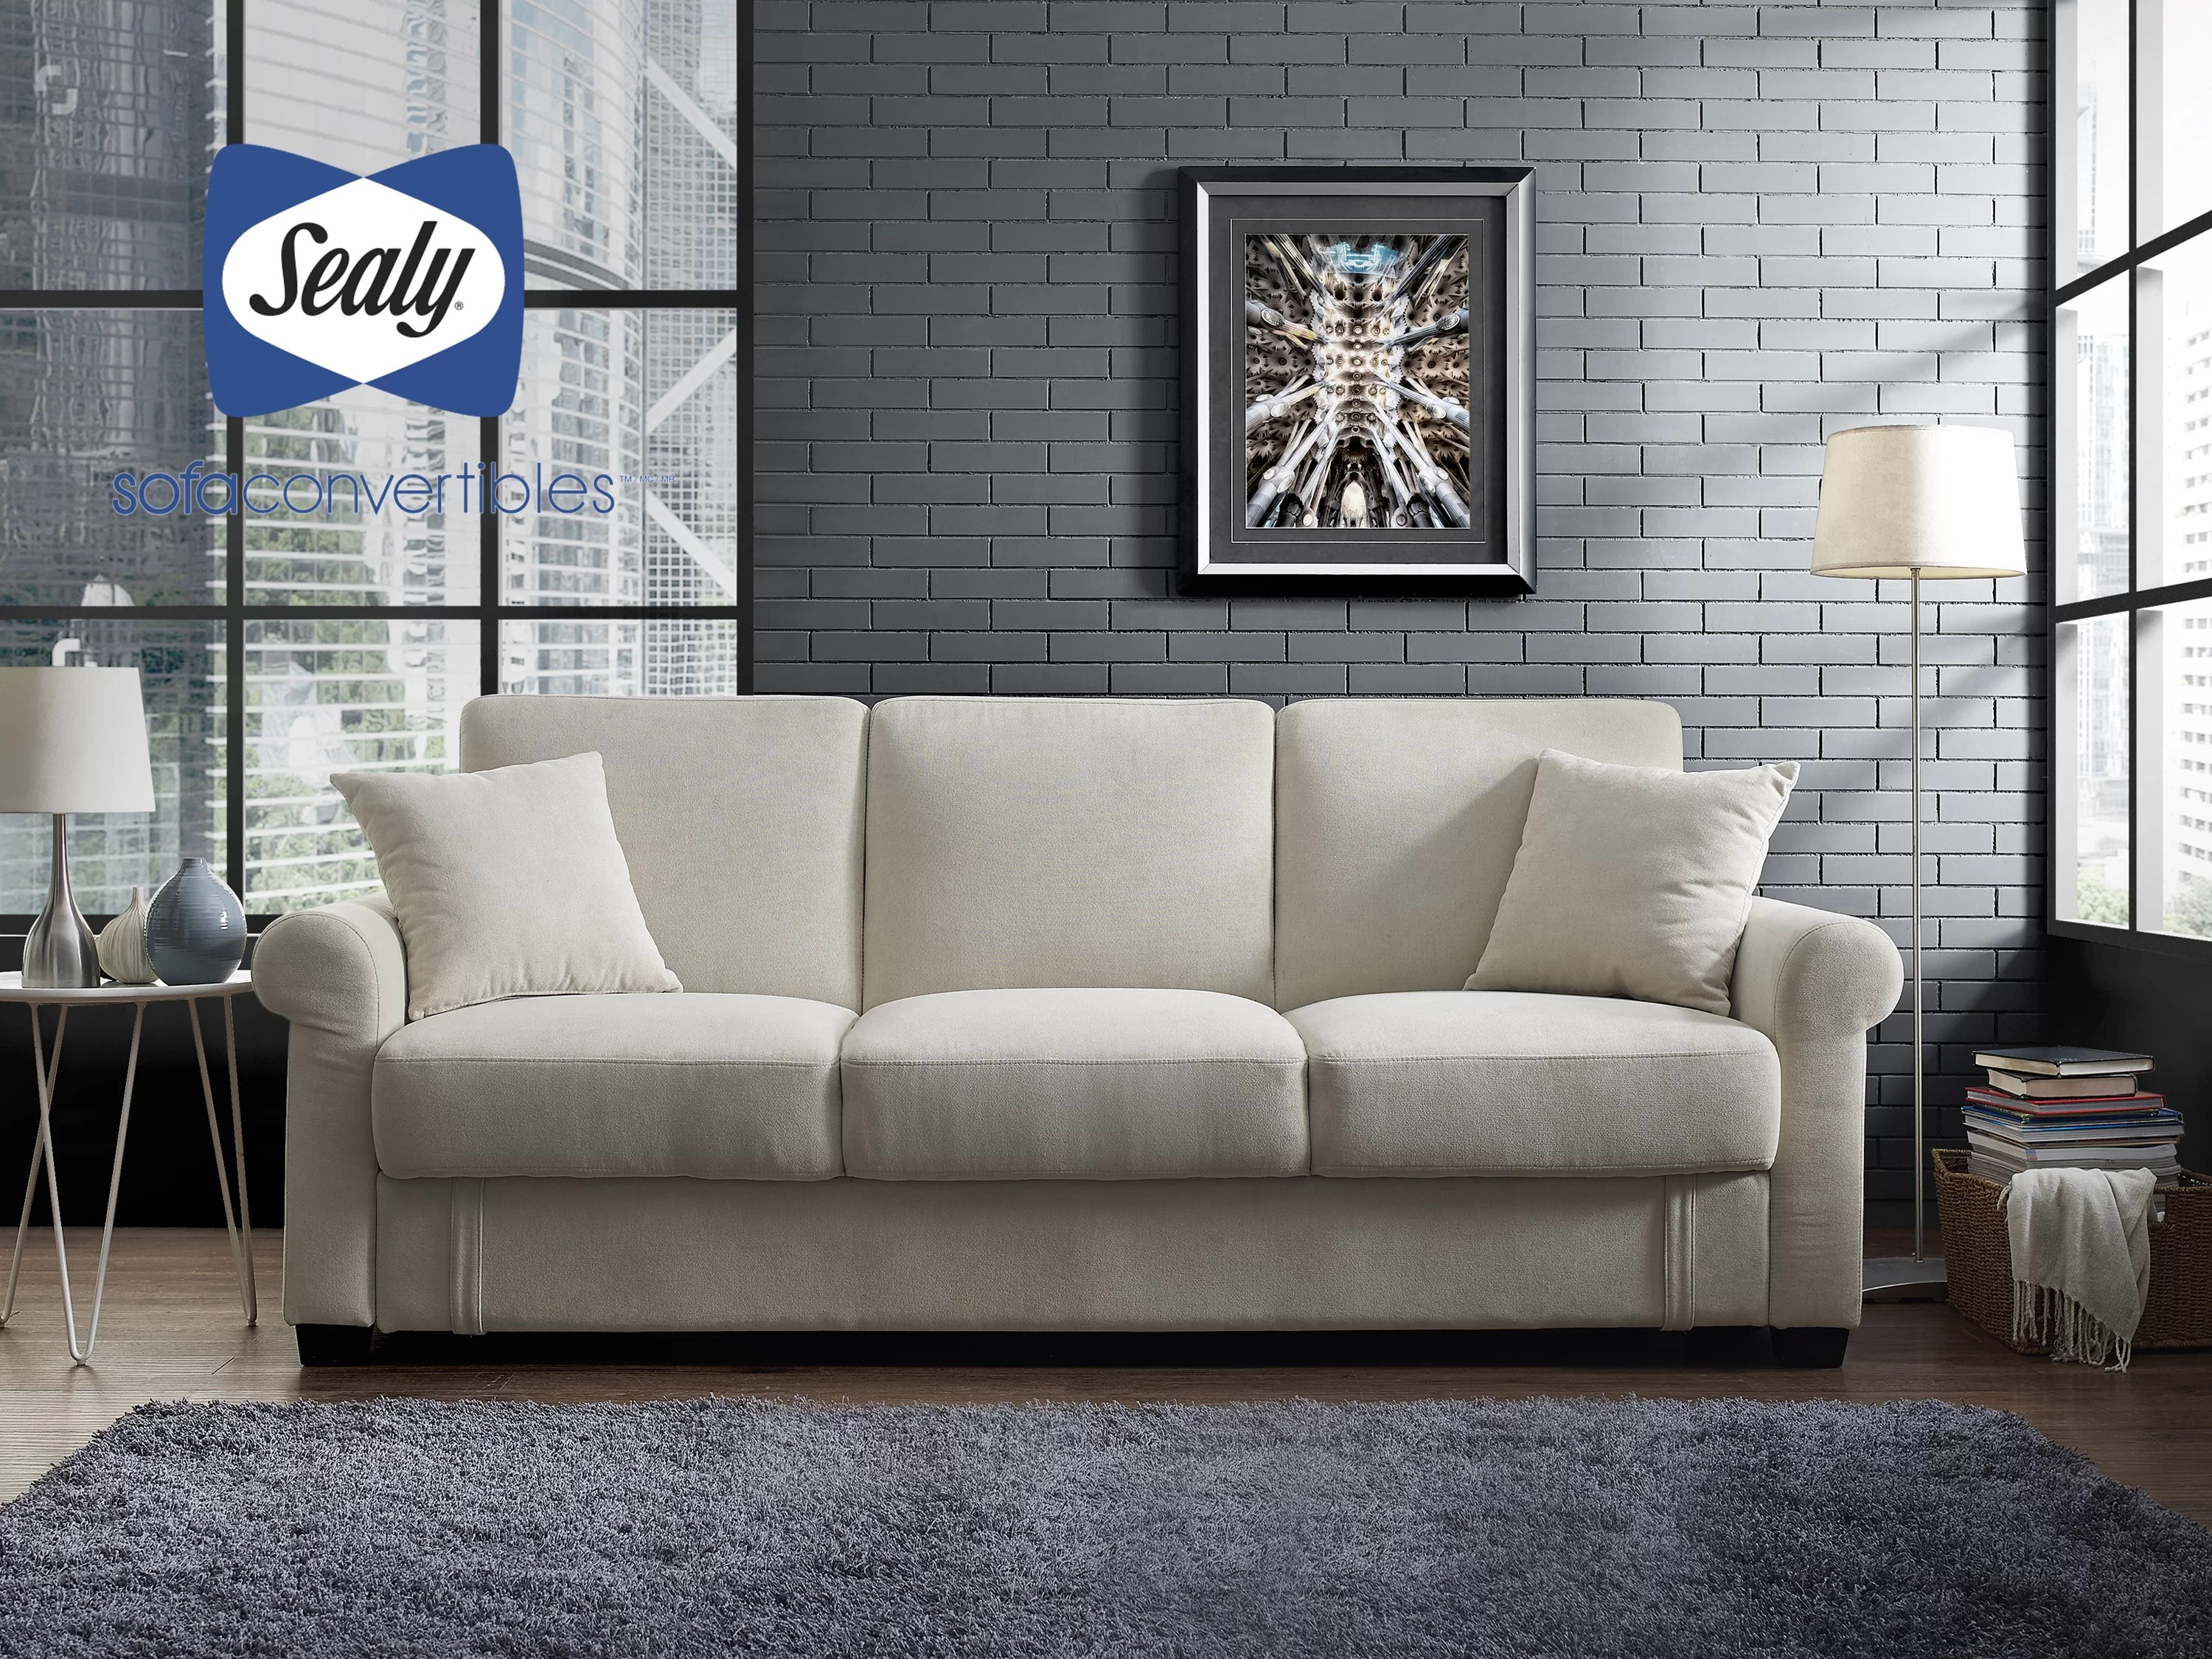 sealy living room furniture ideas for modern sofa convertibles st anne wayfair ca